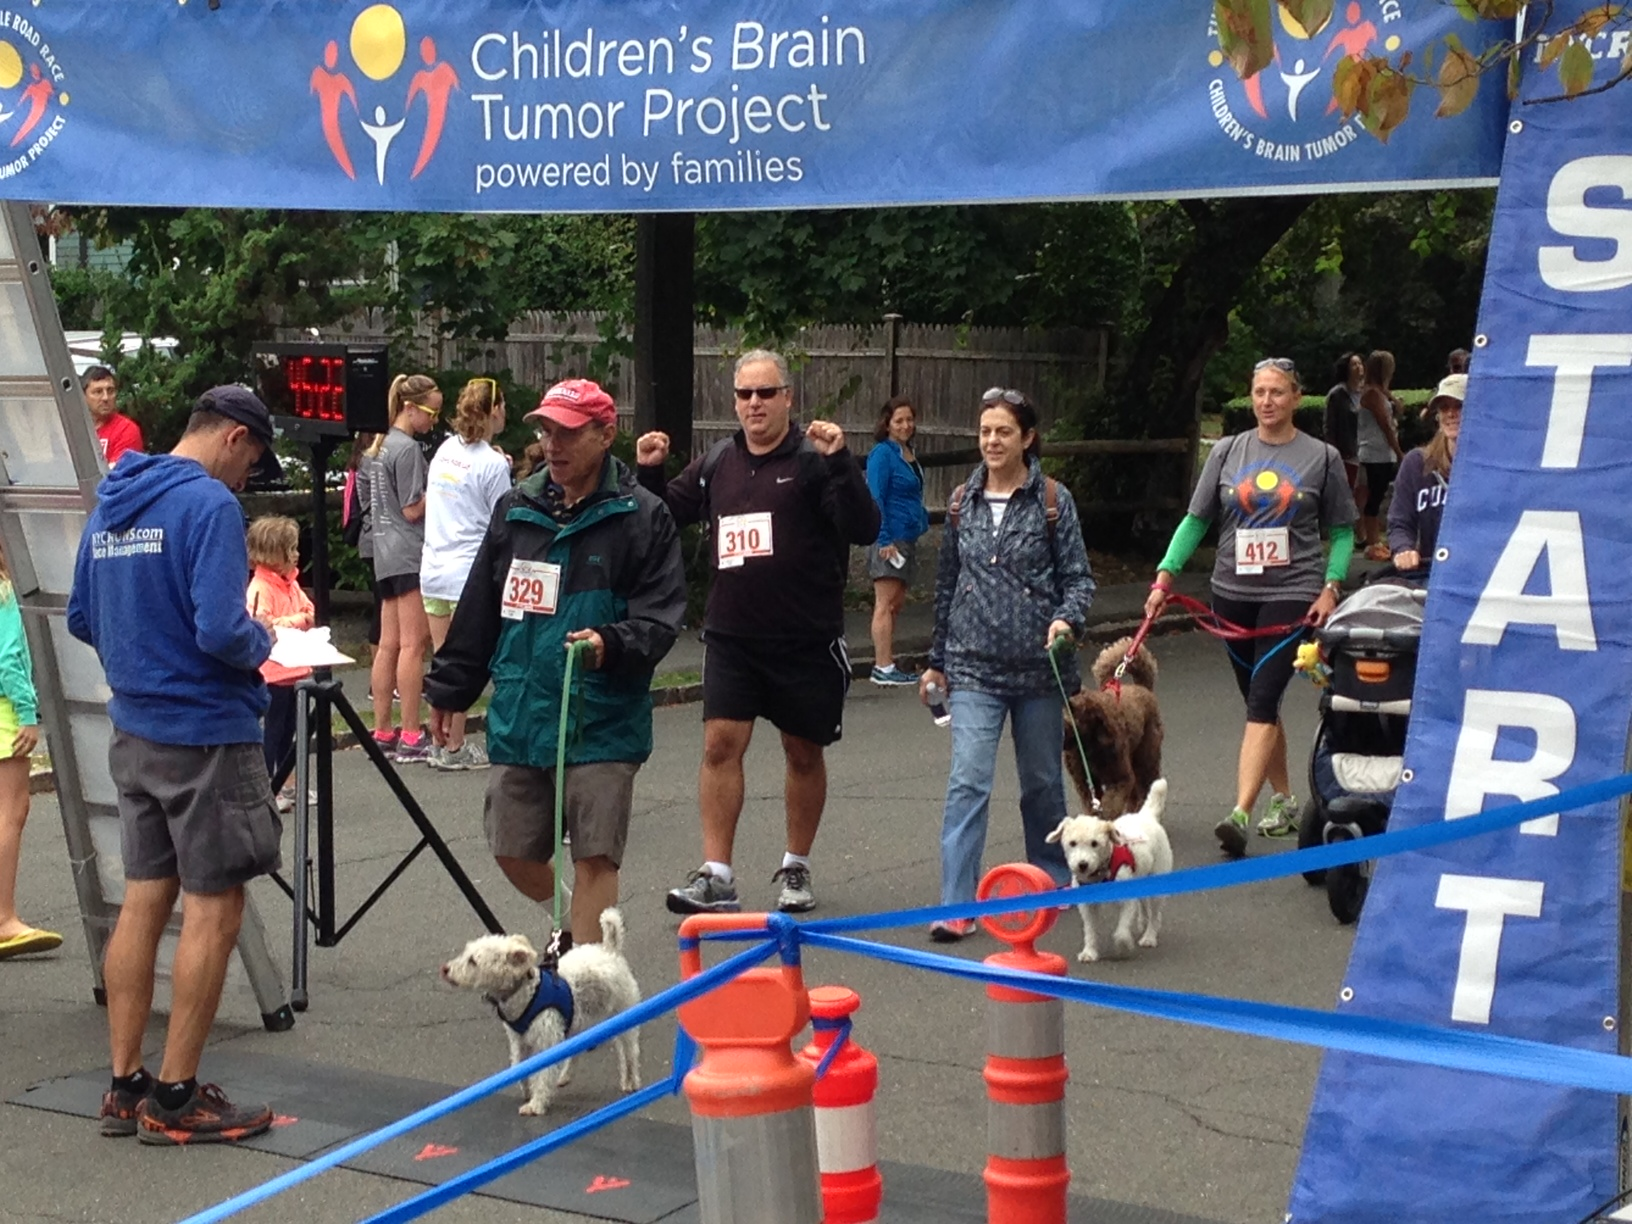 Rosie and Winks cross the finish line!